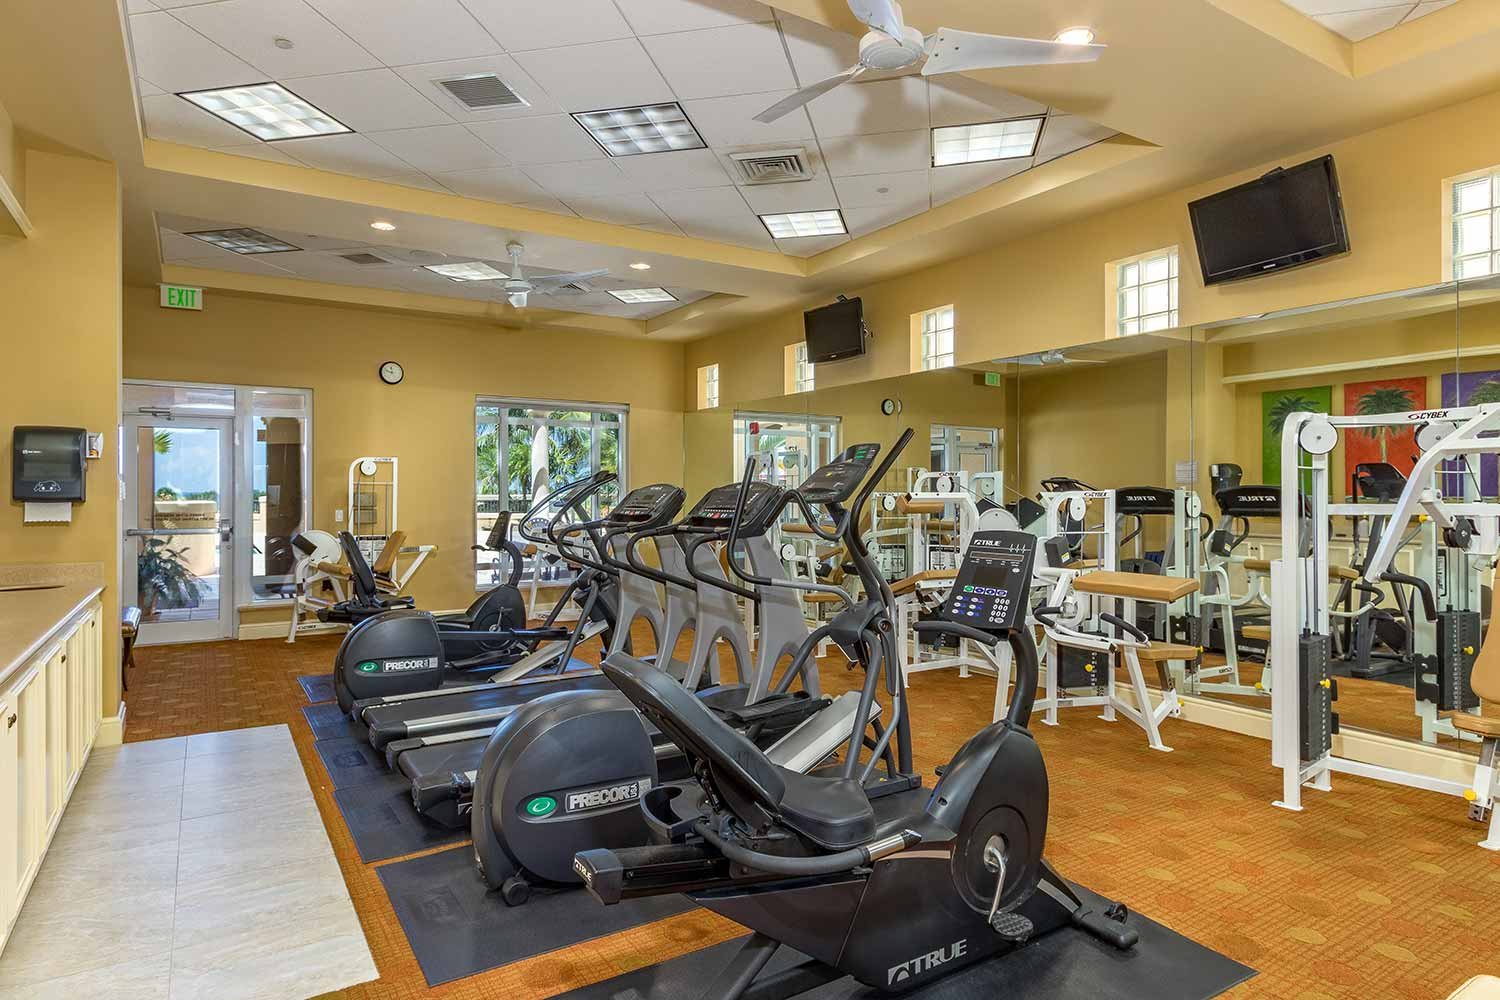 Gym with ellipticals image